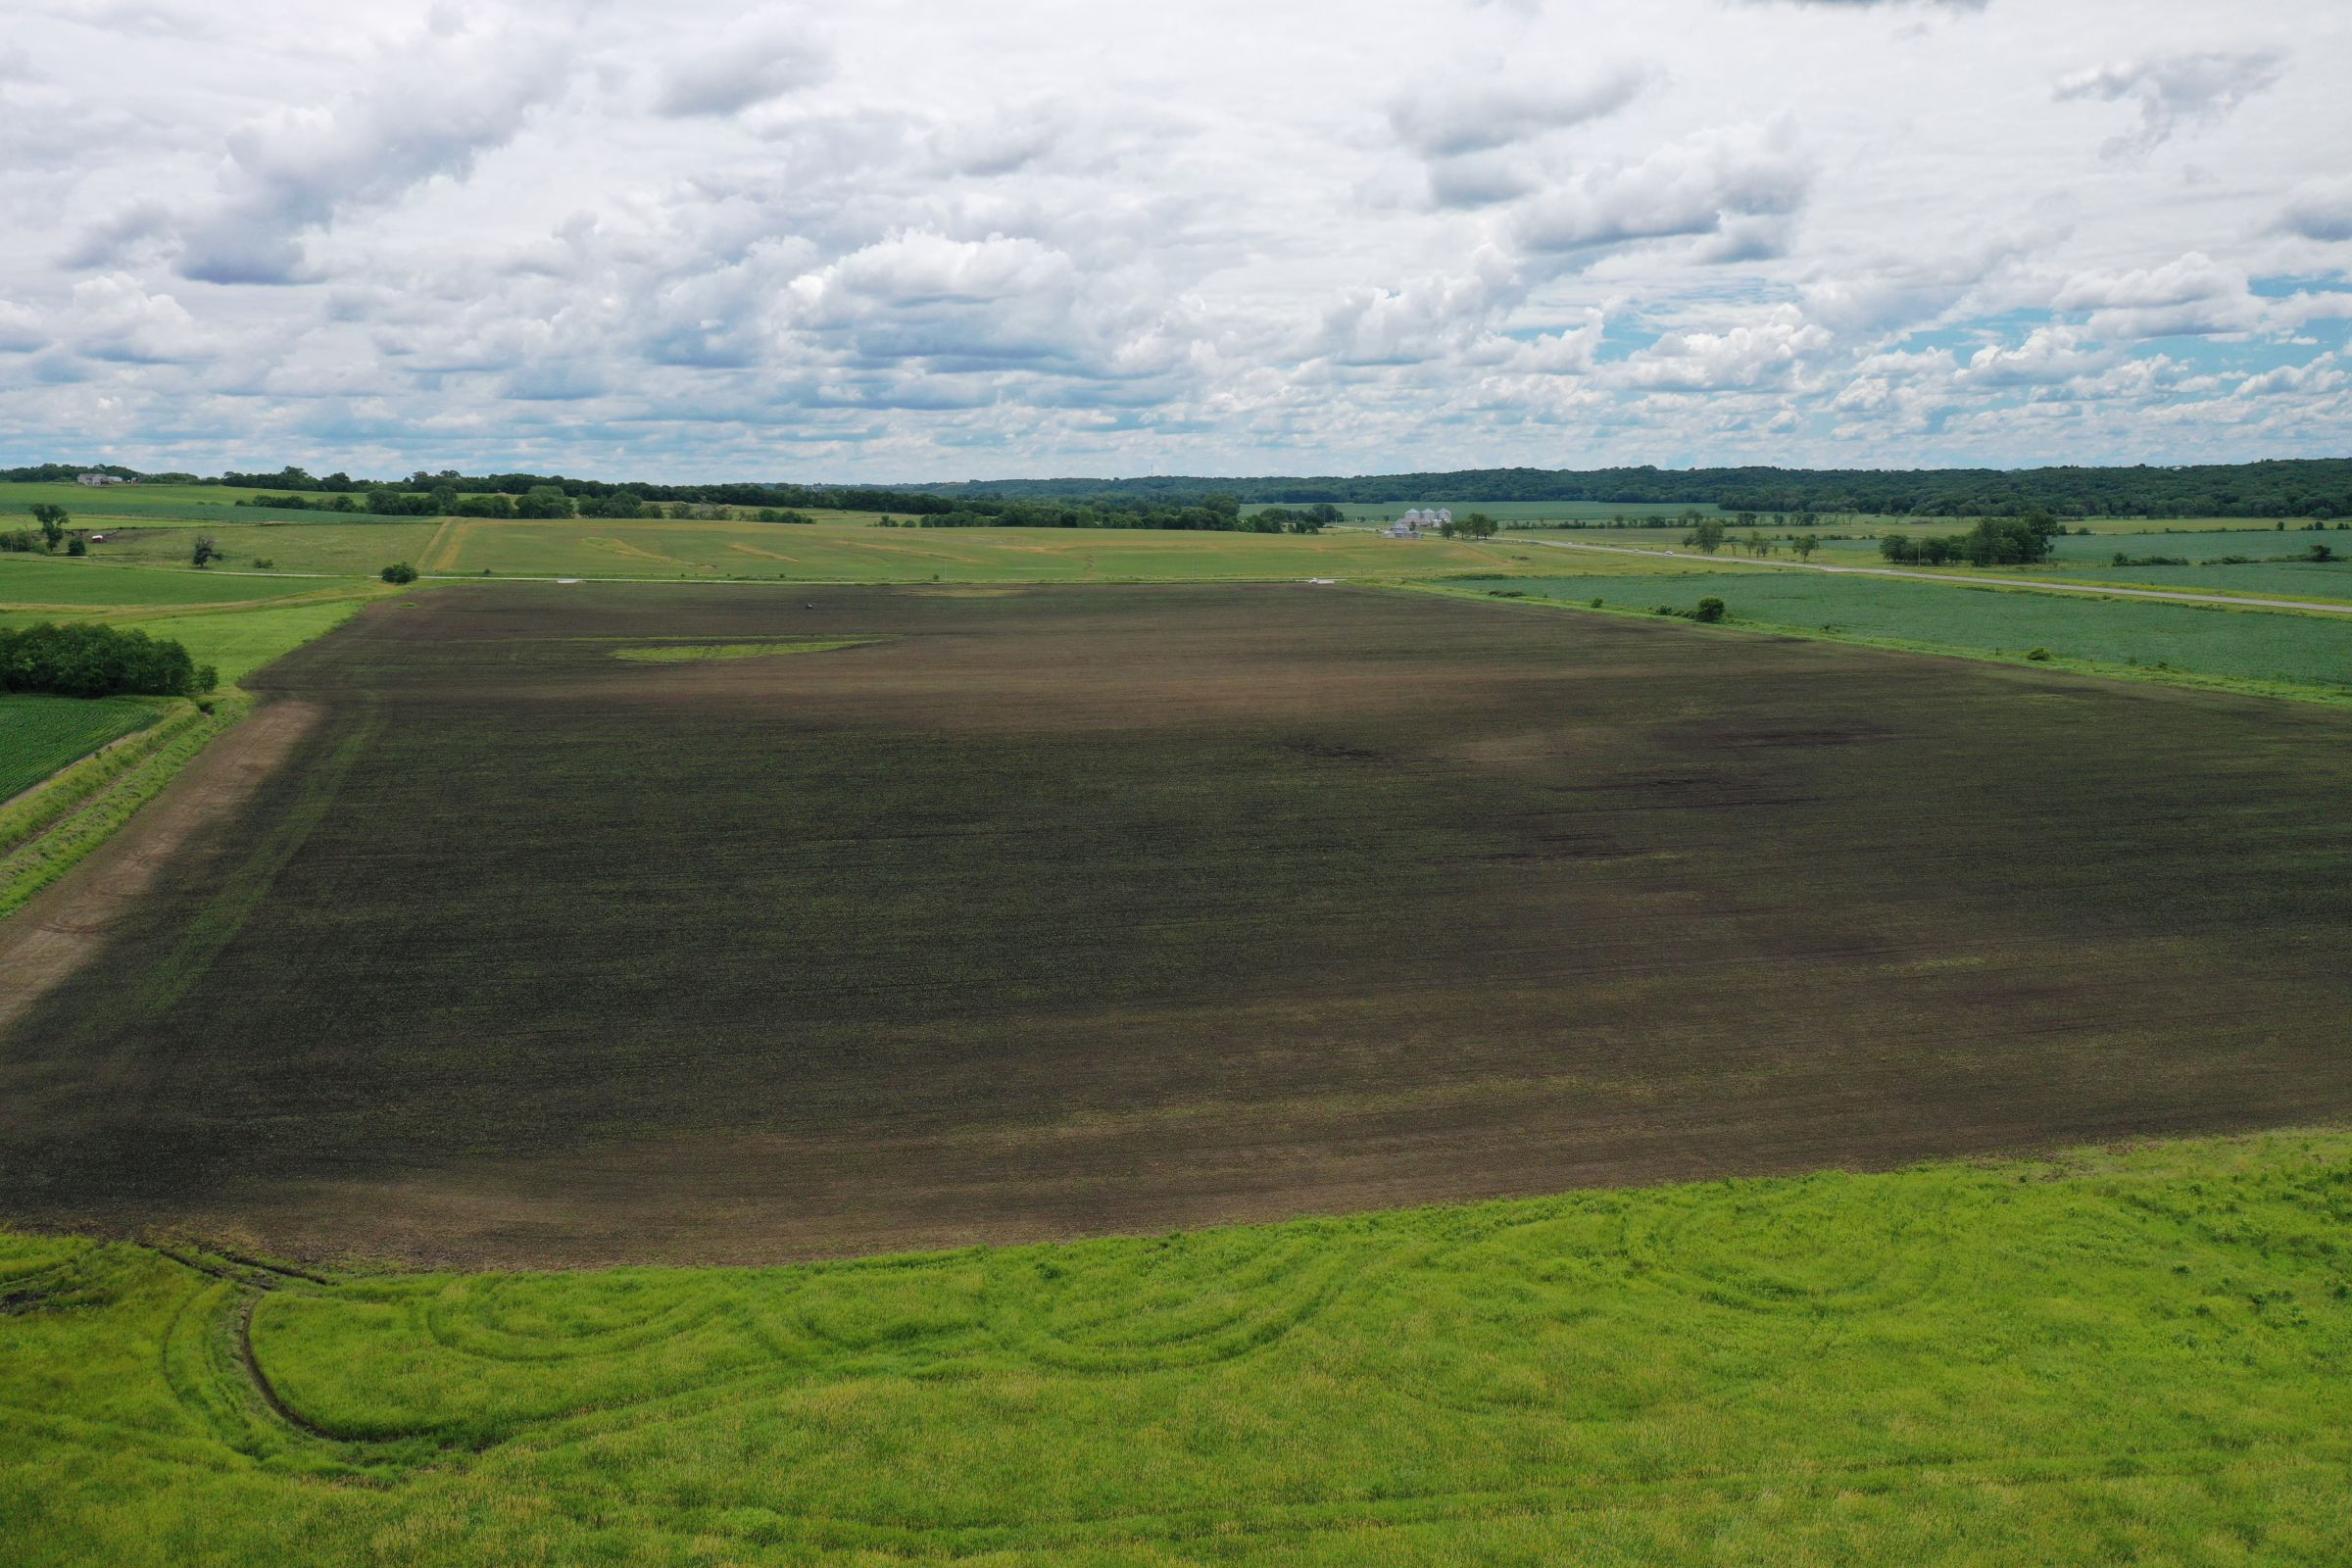 madison-county-iowa-80-acres-listing-number-15257-3-2020-11-16-205913.jpg